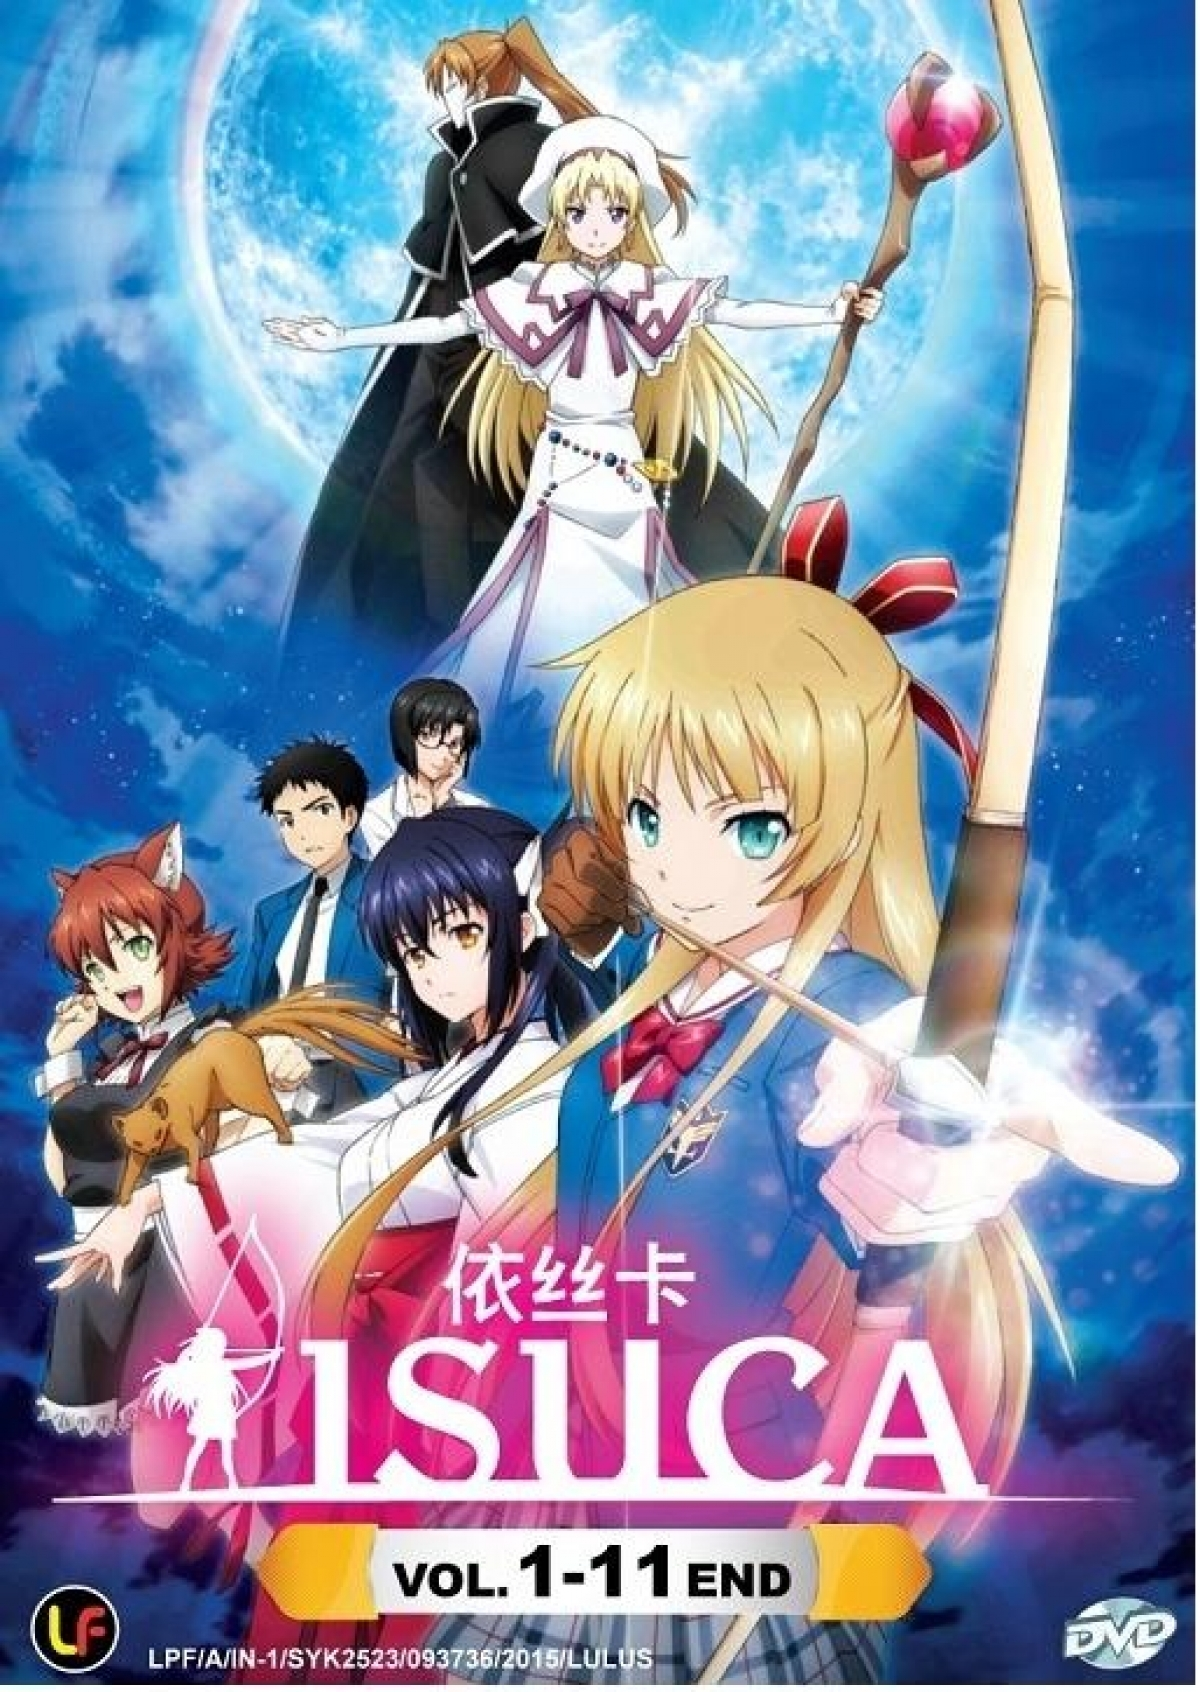 Isuca tv 1 11 end dvd anime dvd